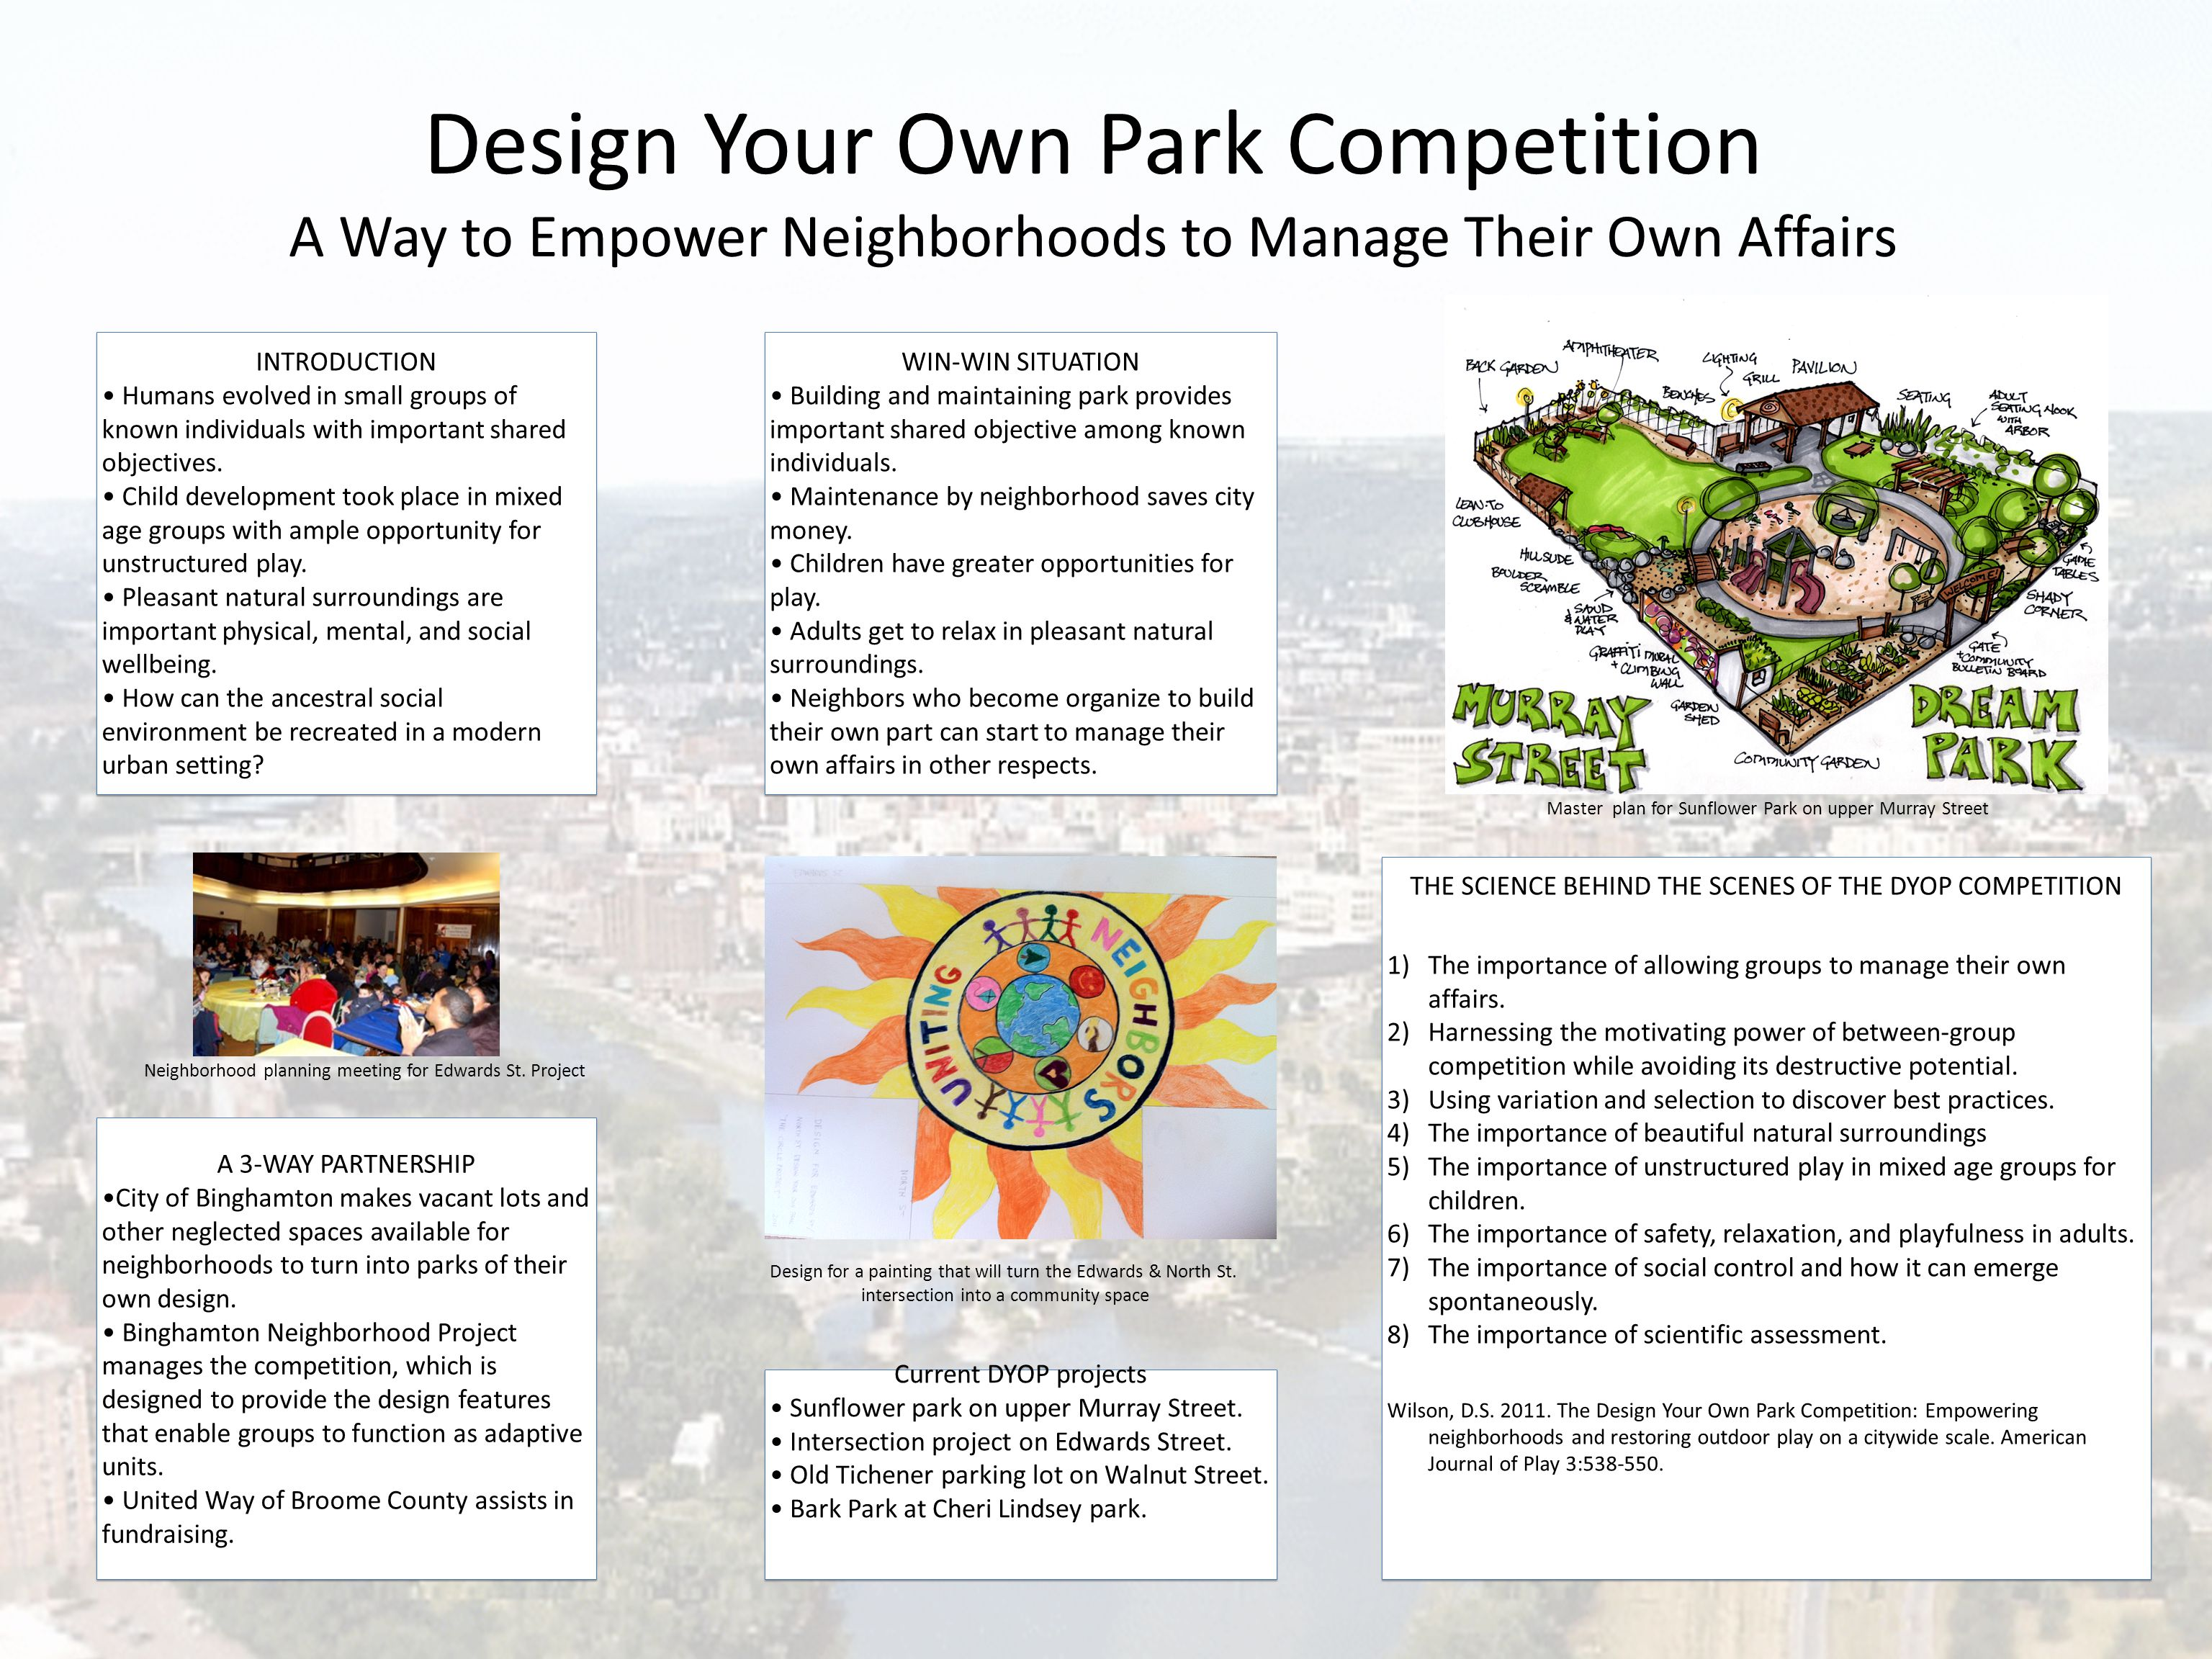 Design Your Own Park Competition A Way to Empower Neighborhoods to Manage Their Own Affairs INTRODUCTION Humans evolved in small groups of known indiv